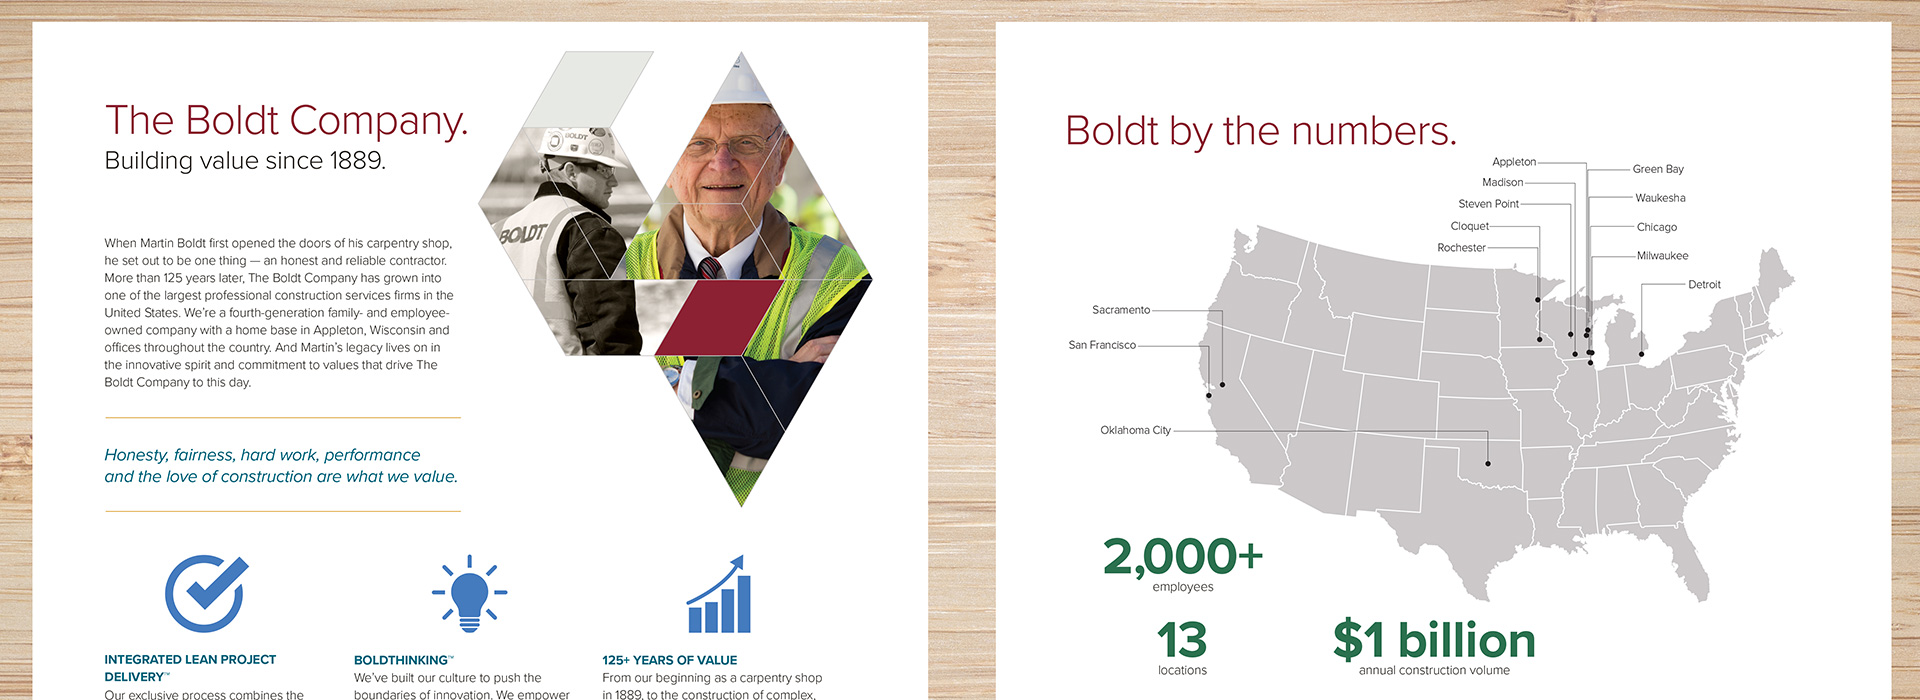 Boldt Construction Brand Development Strategy - Imaginasium